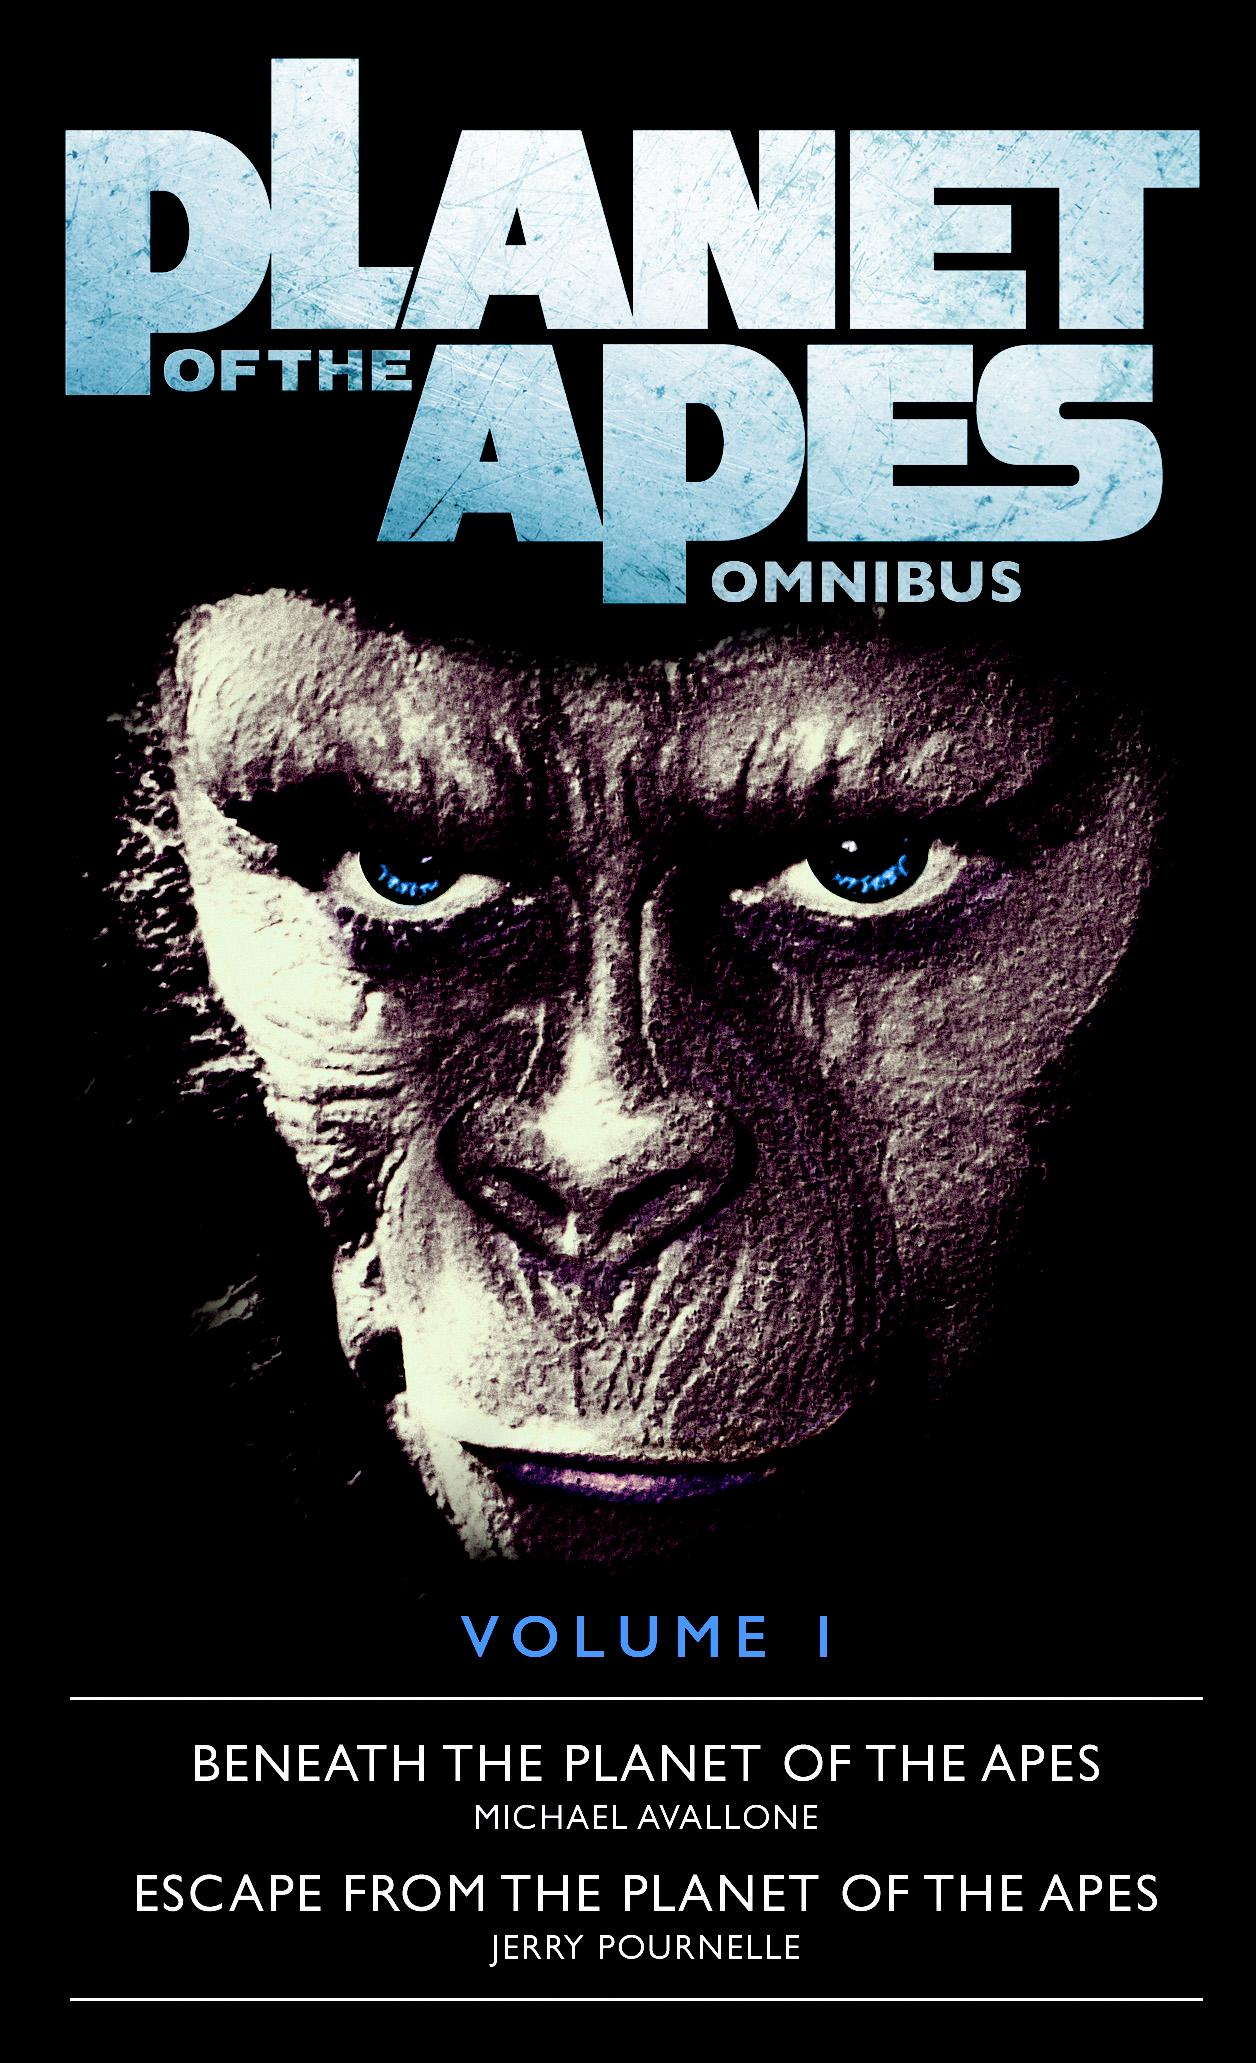 Planet of the Apes Omnibus 1 guano apes guano apes proud like a god 180 gr colour